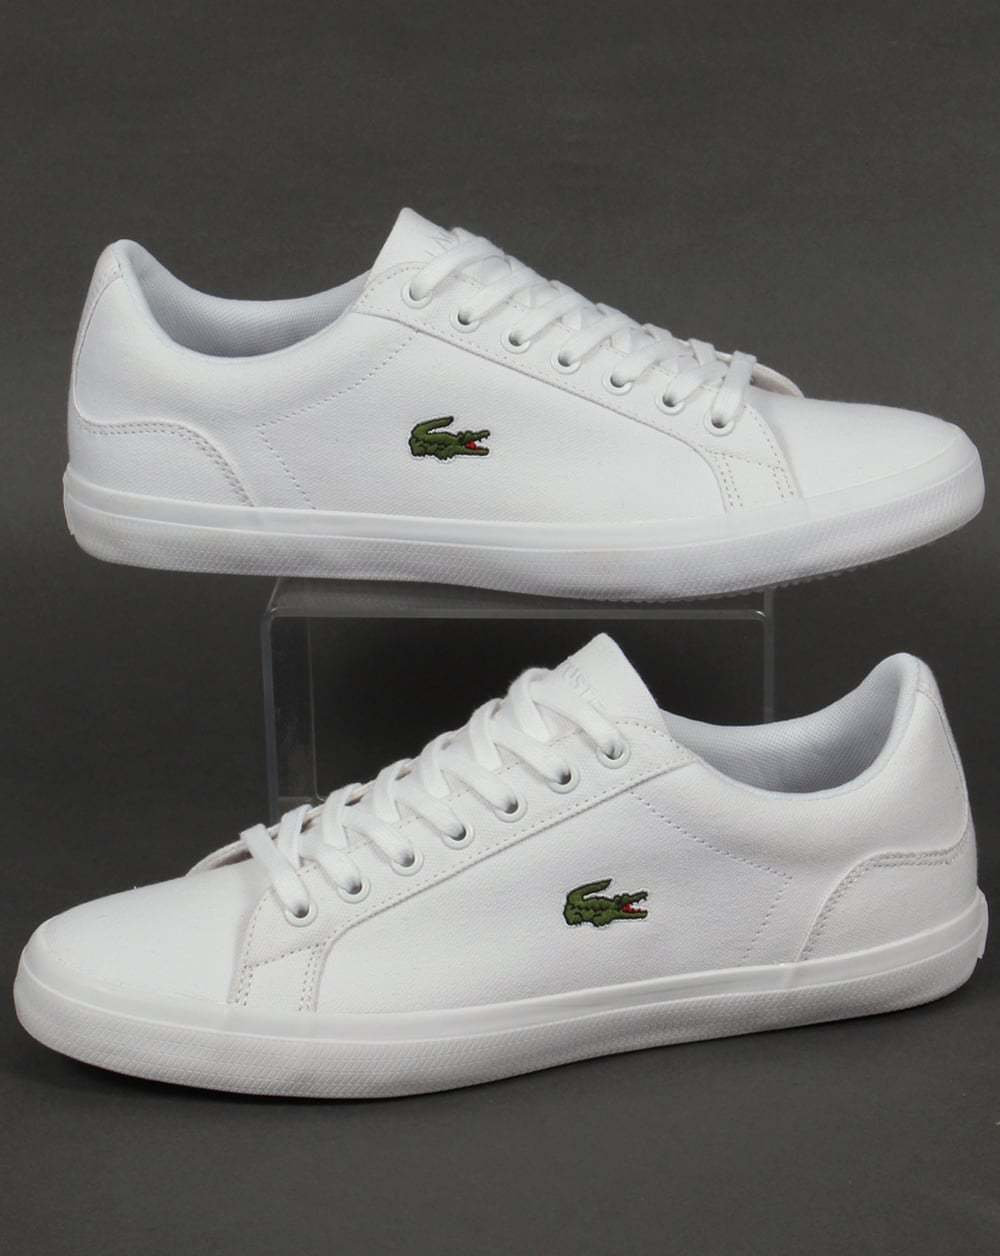 Lacoste Lerond BL Trainers in blanc - canvas low top sneaker